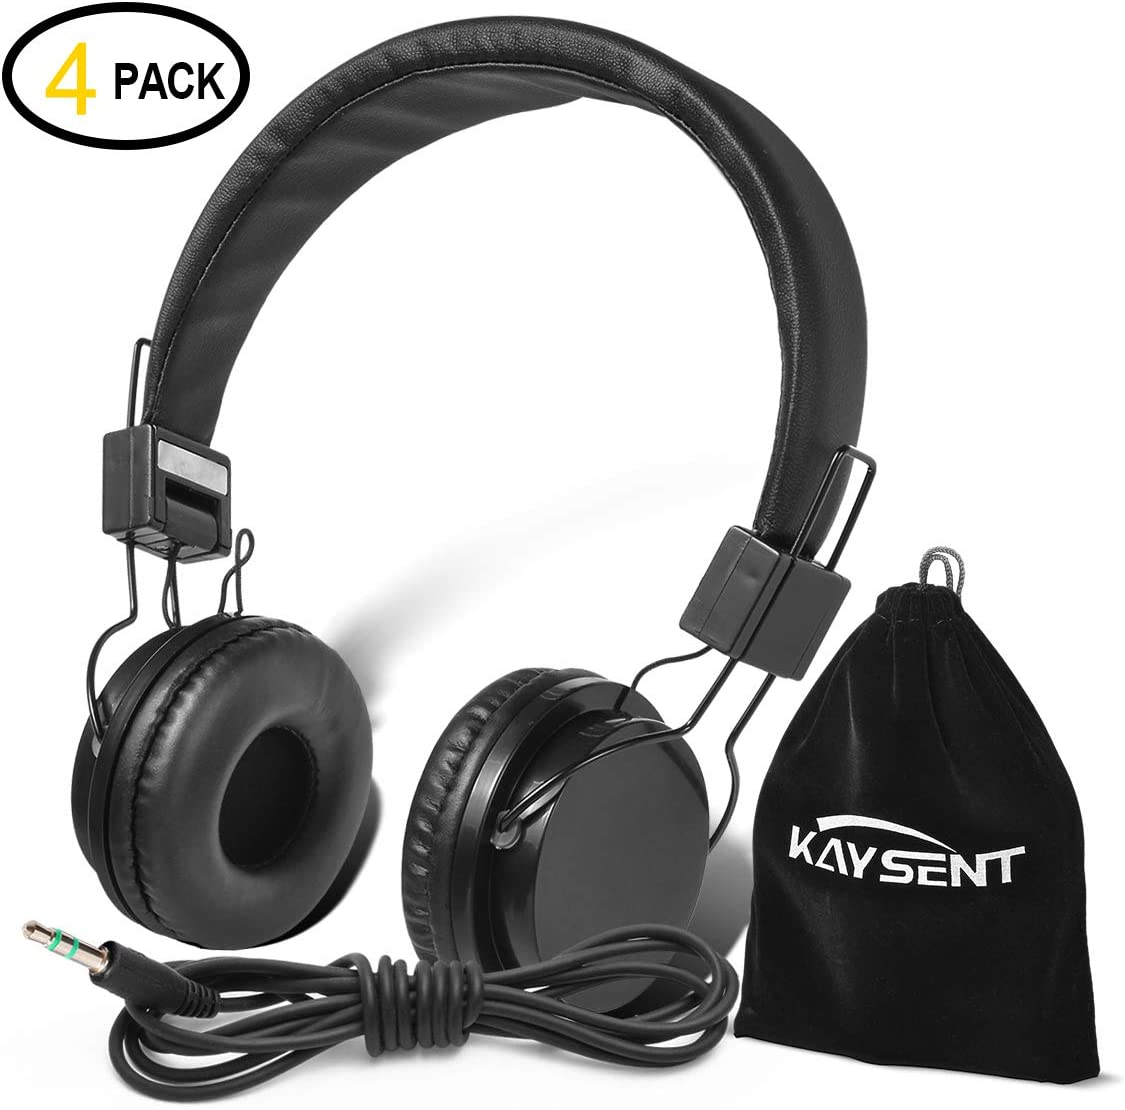 Kaysent Heavy Duty Headphones Set for Students – KHPB-4B 4 Packs Classroom Kids Headphones for School, Library, Computers, Children and Adult No Microphone